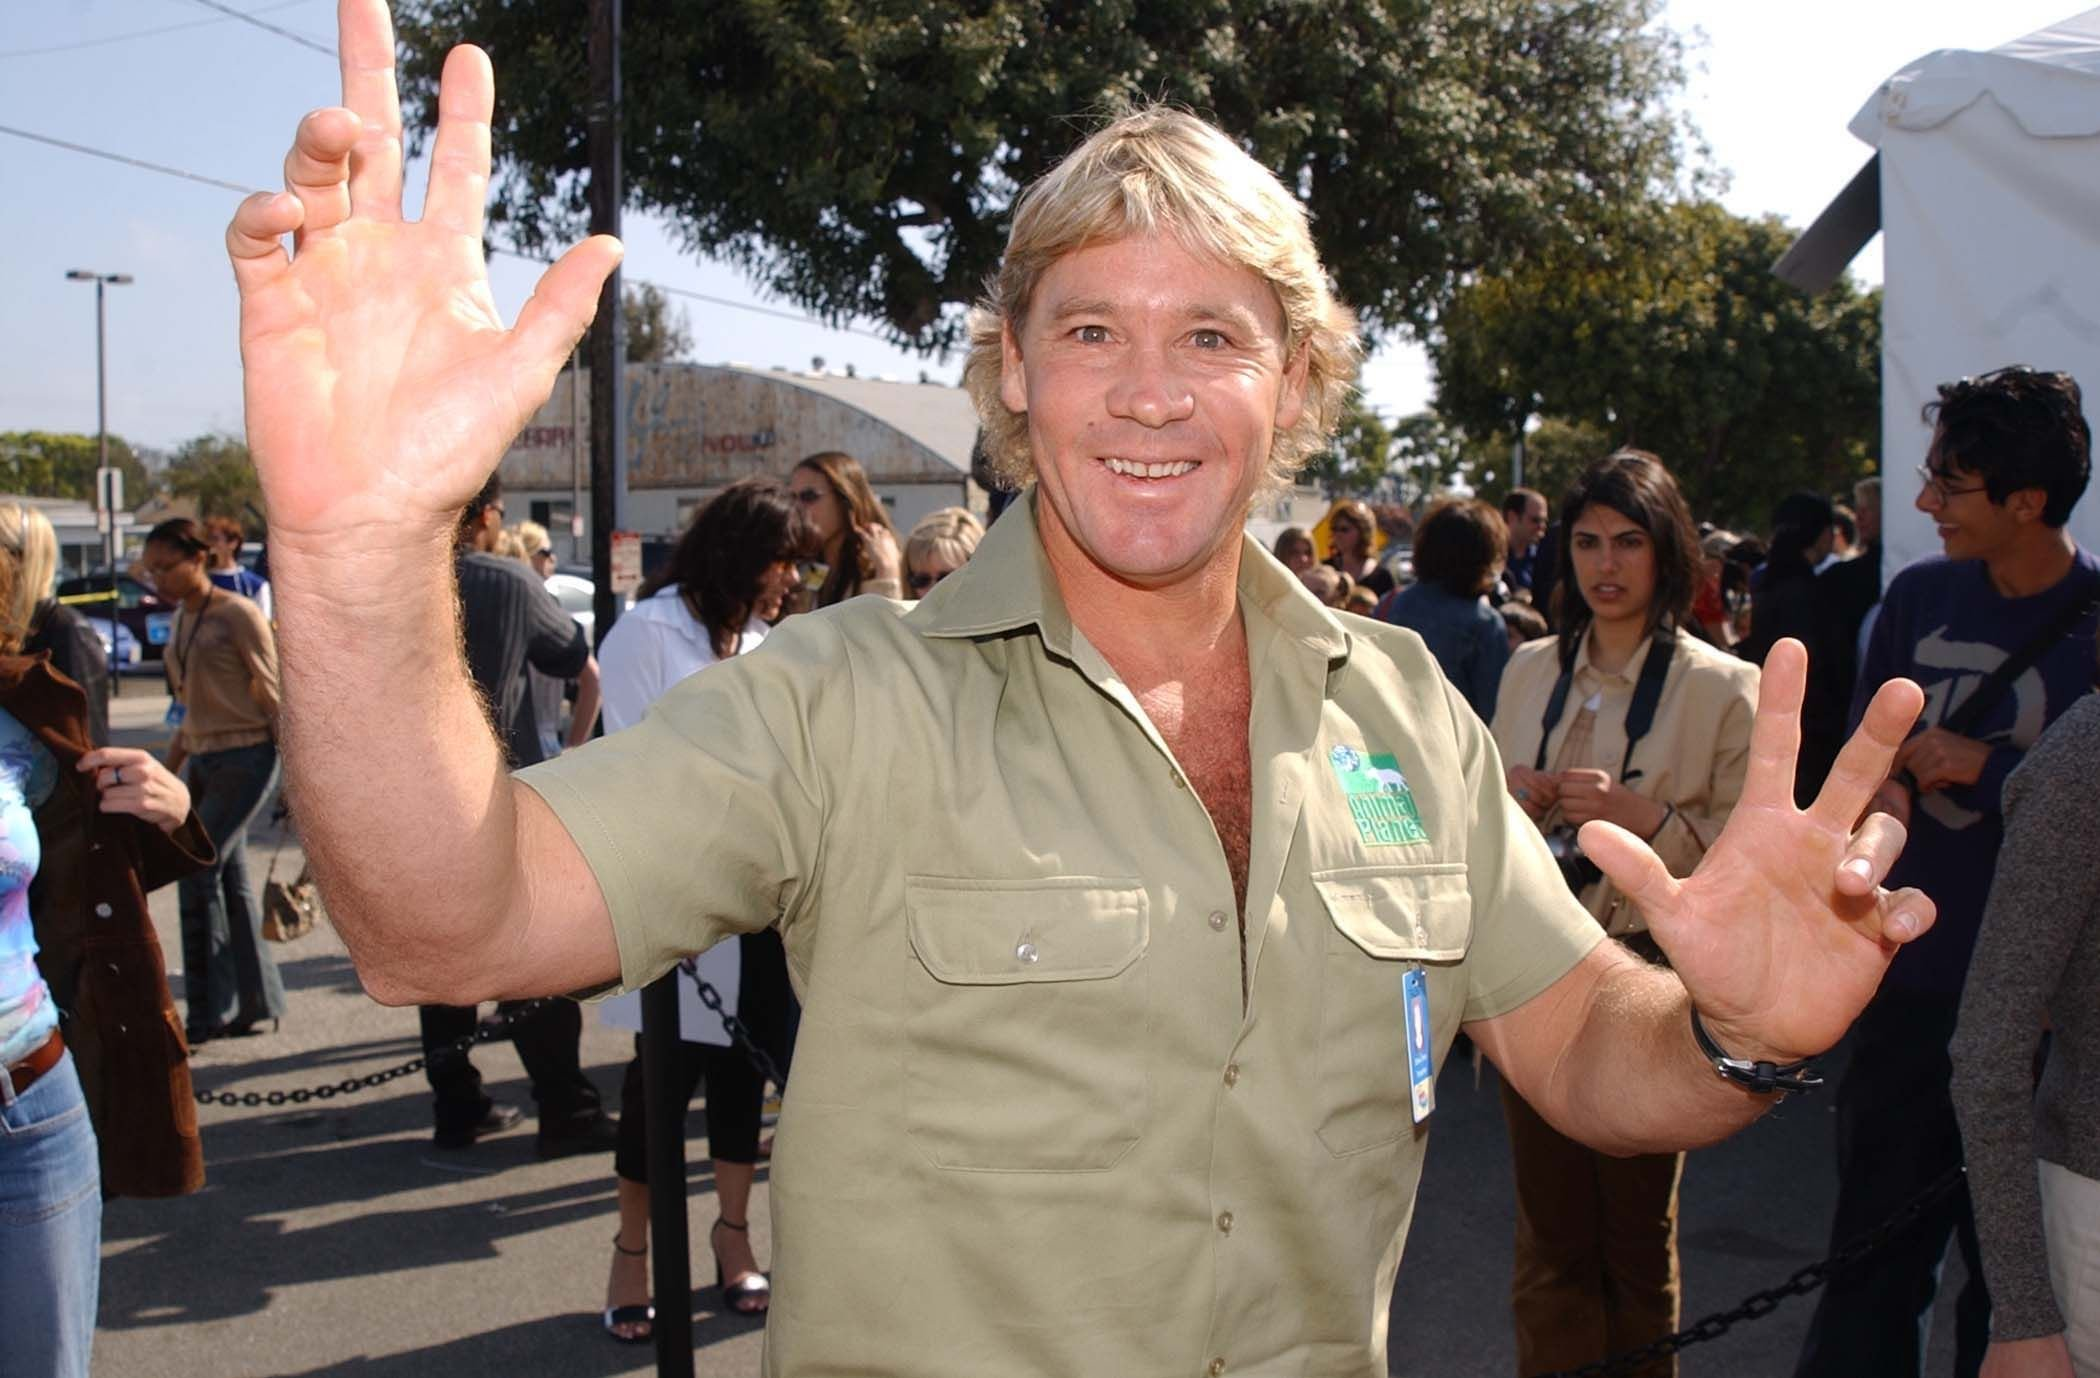 Steve Irwin at Kid's Choice Awards Arrivals in Santa Monica on April 20, 2002 | Photo: Getty Images